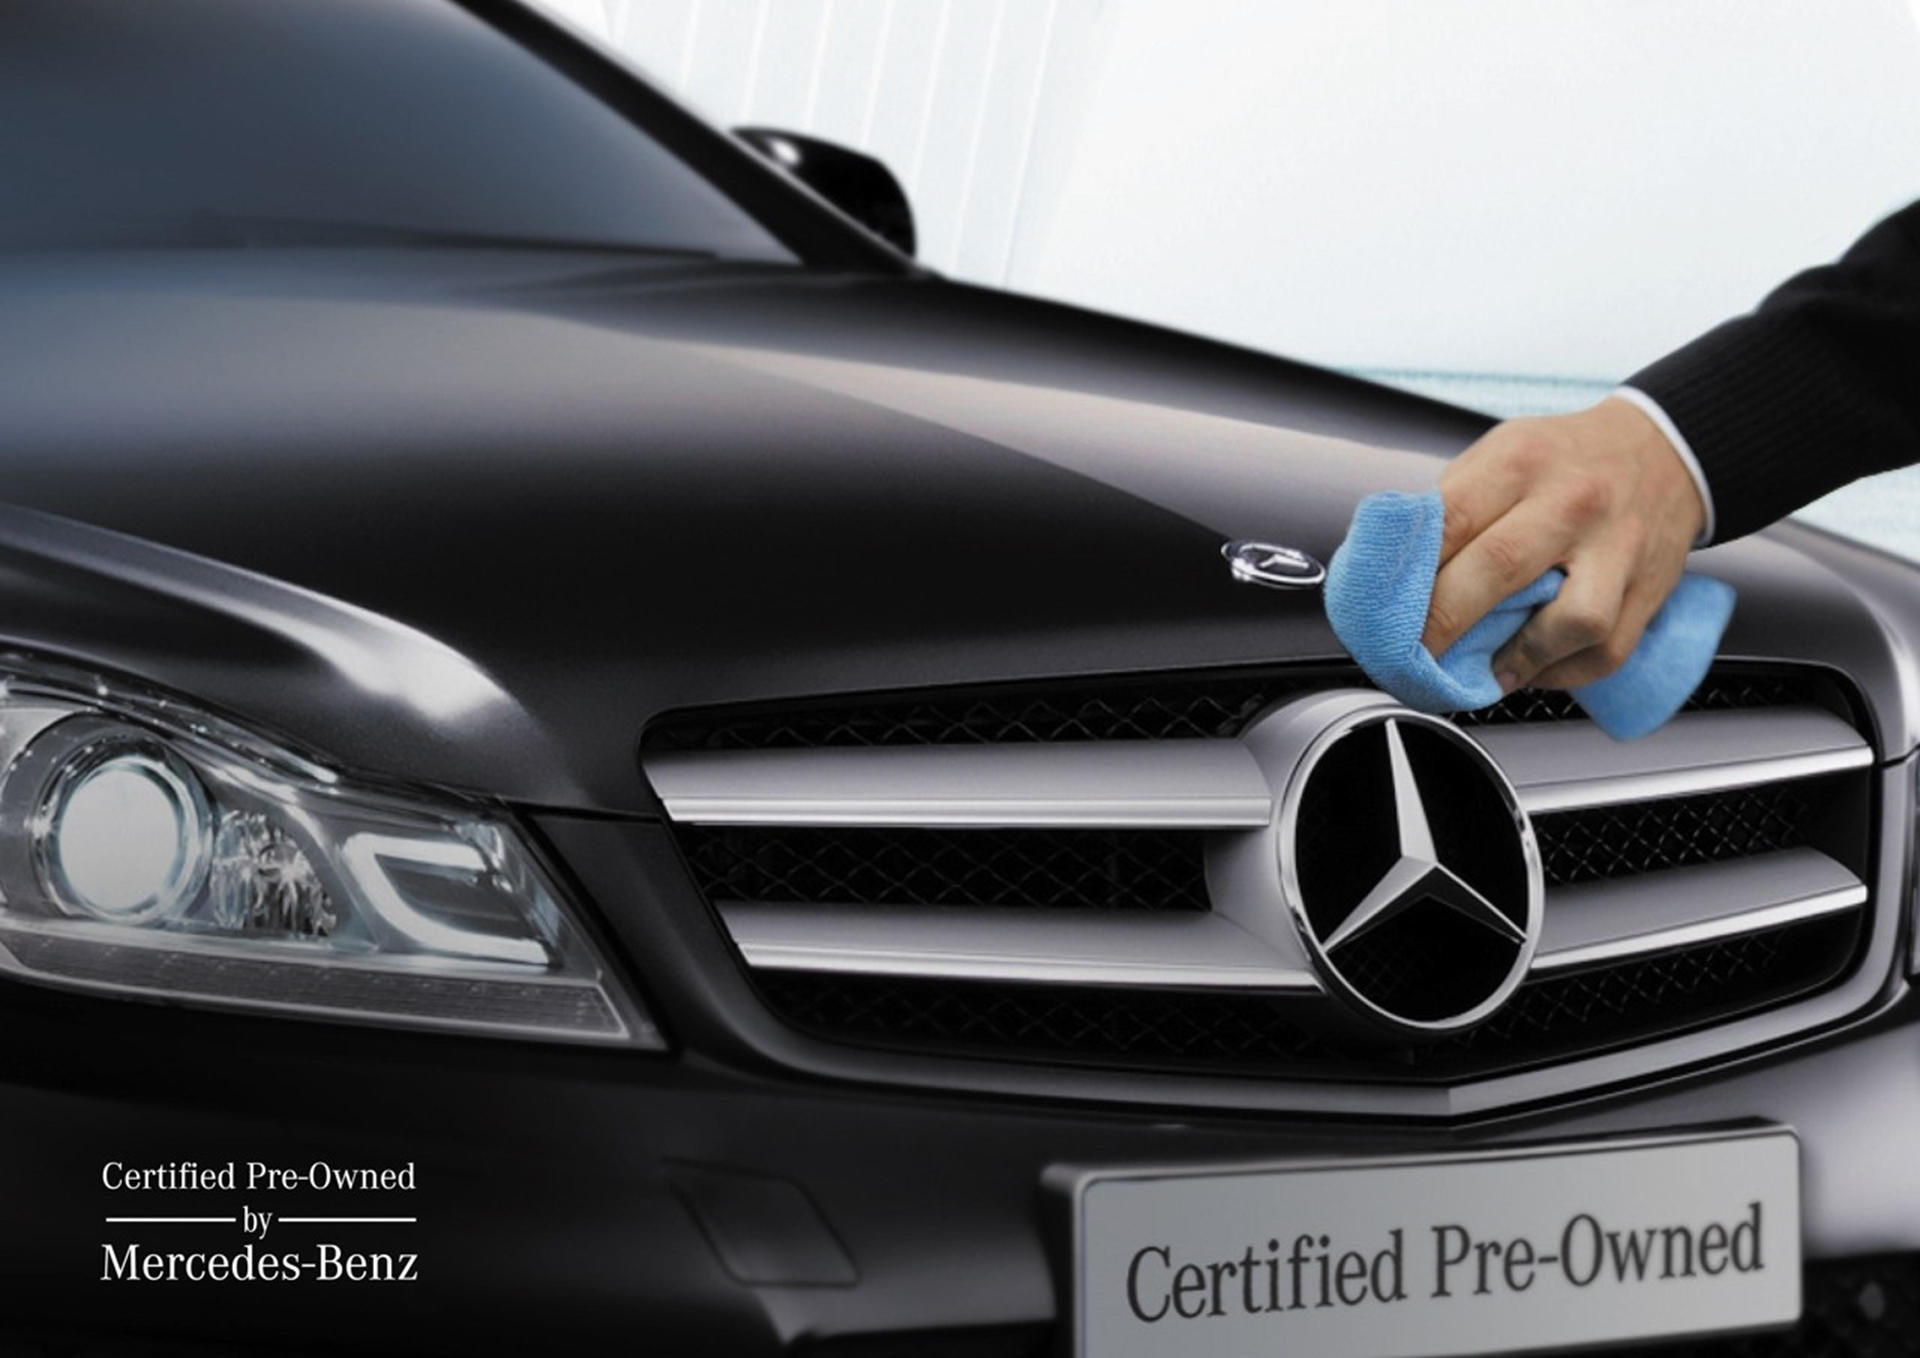 Mercedes benz certified pre owned guarantees peace of mind for Mercedes benz certified pre owned canada